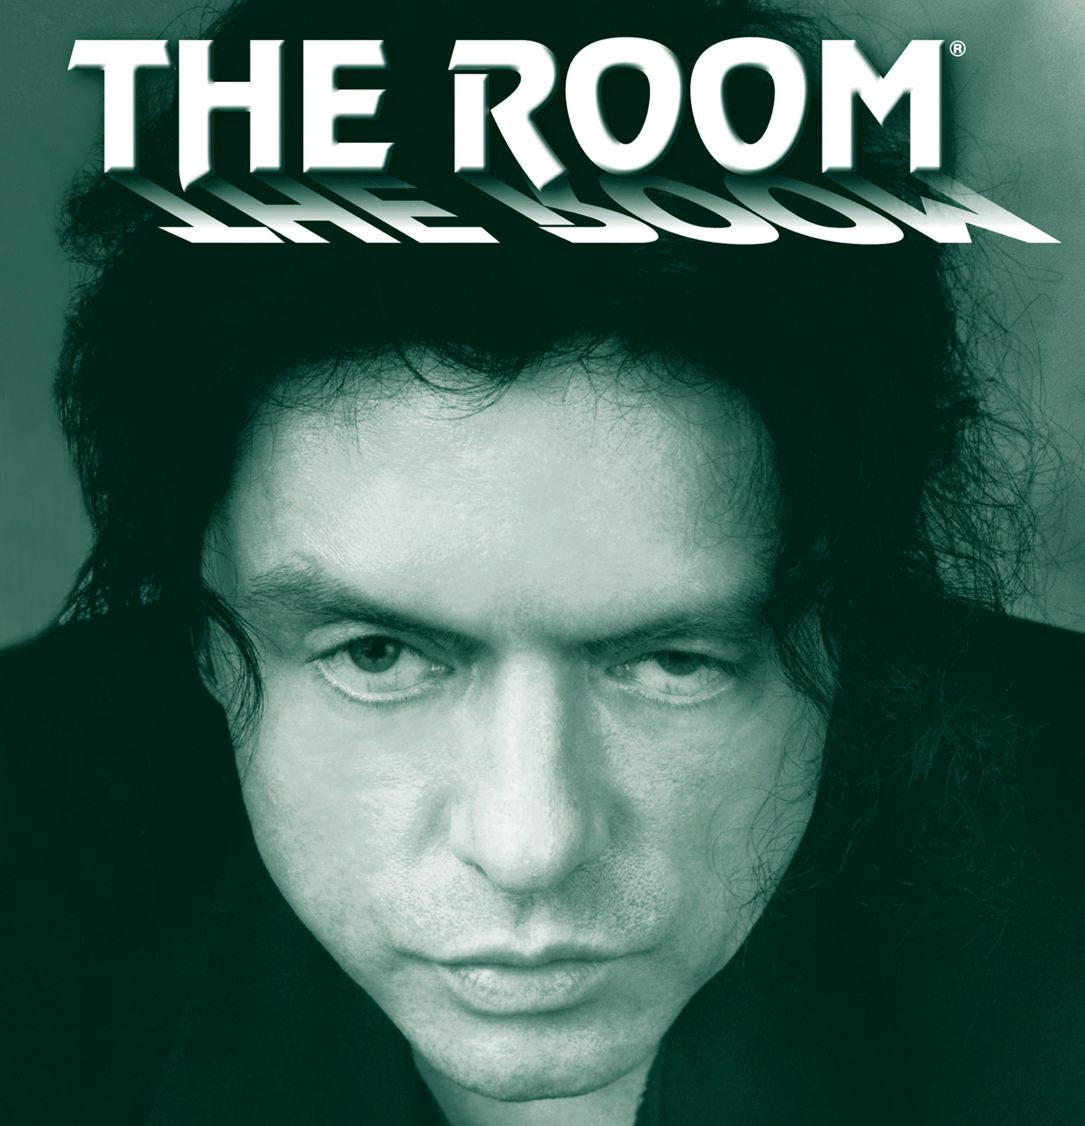 The Room\' (movie): Tommy Wiseau\'s bad cult masterpiece